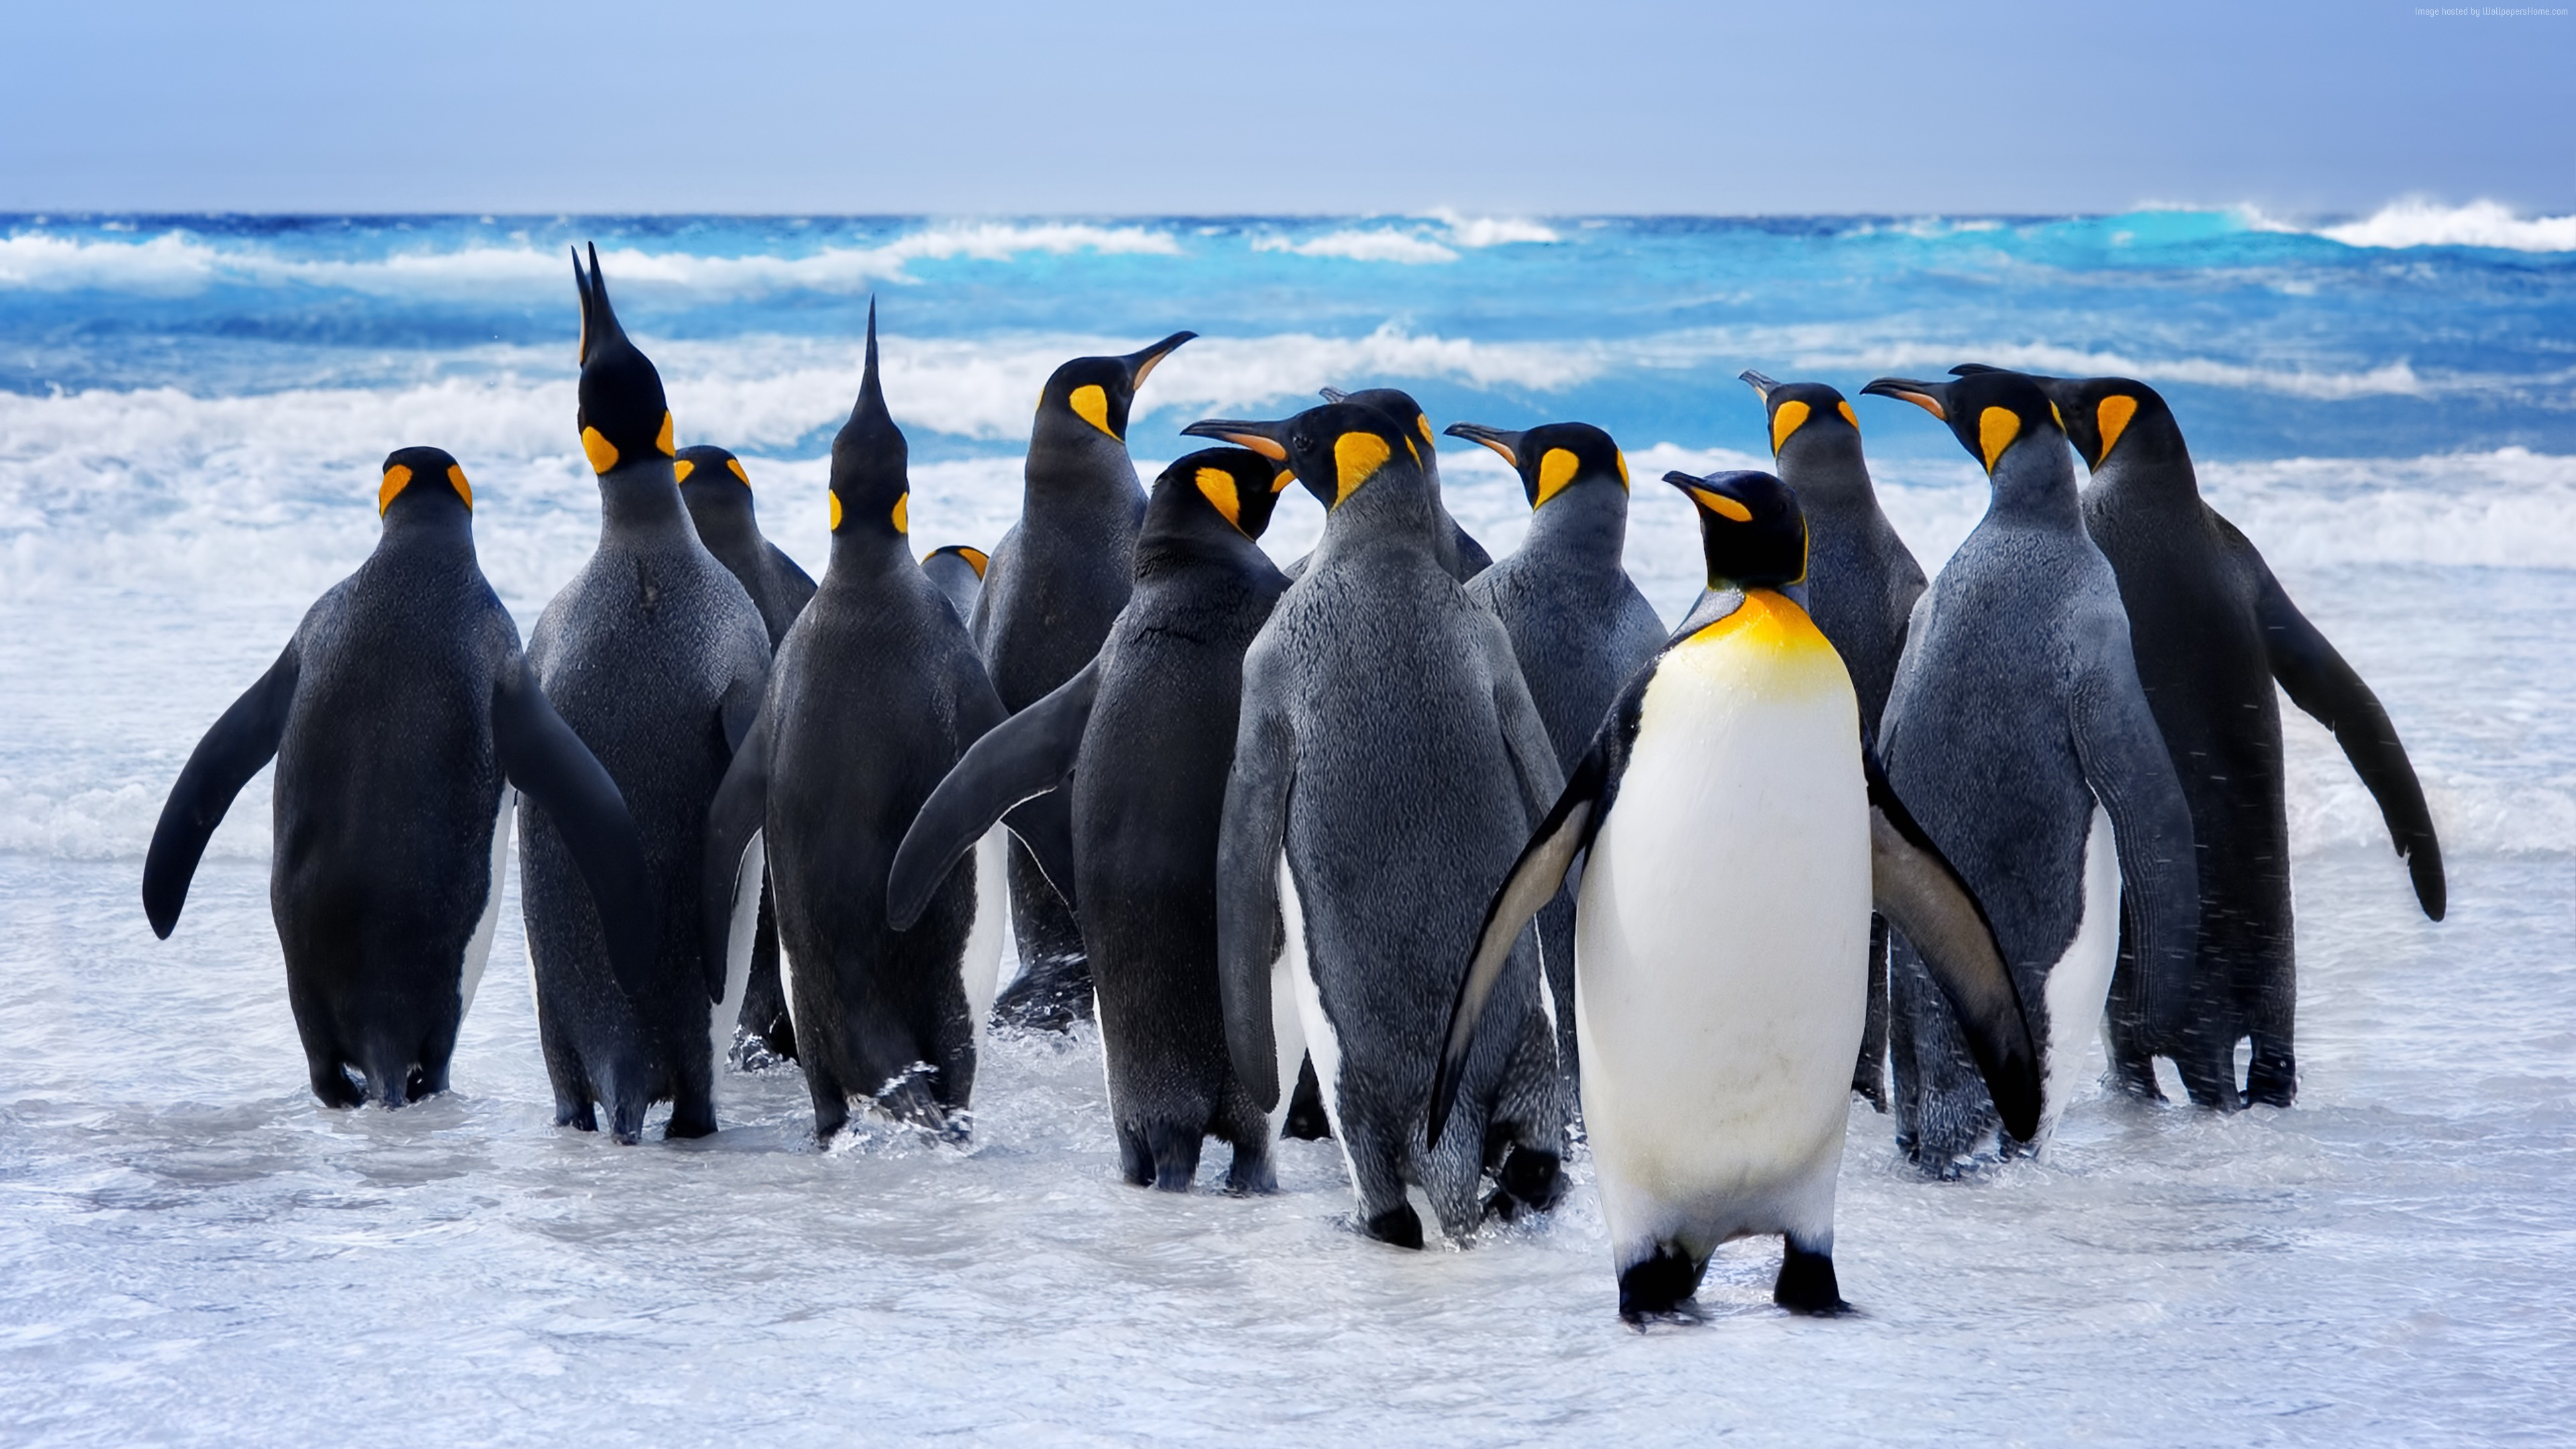 Wallpaper Pinguin, snow, ocean, cute animals, funny, Animals